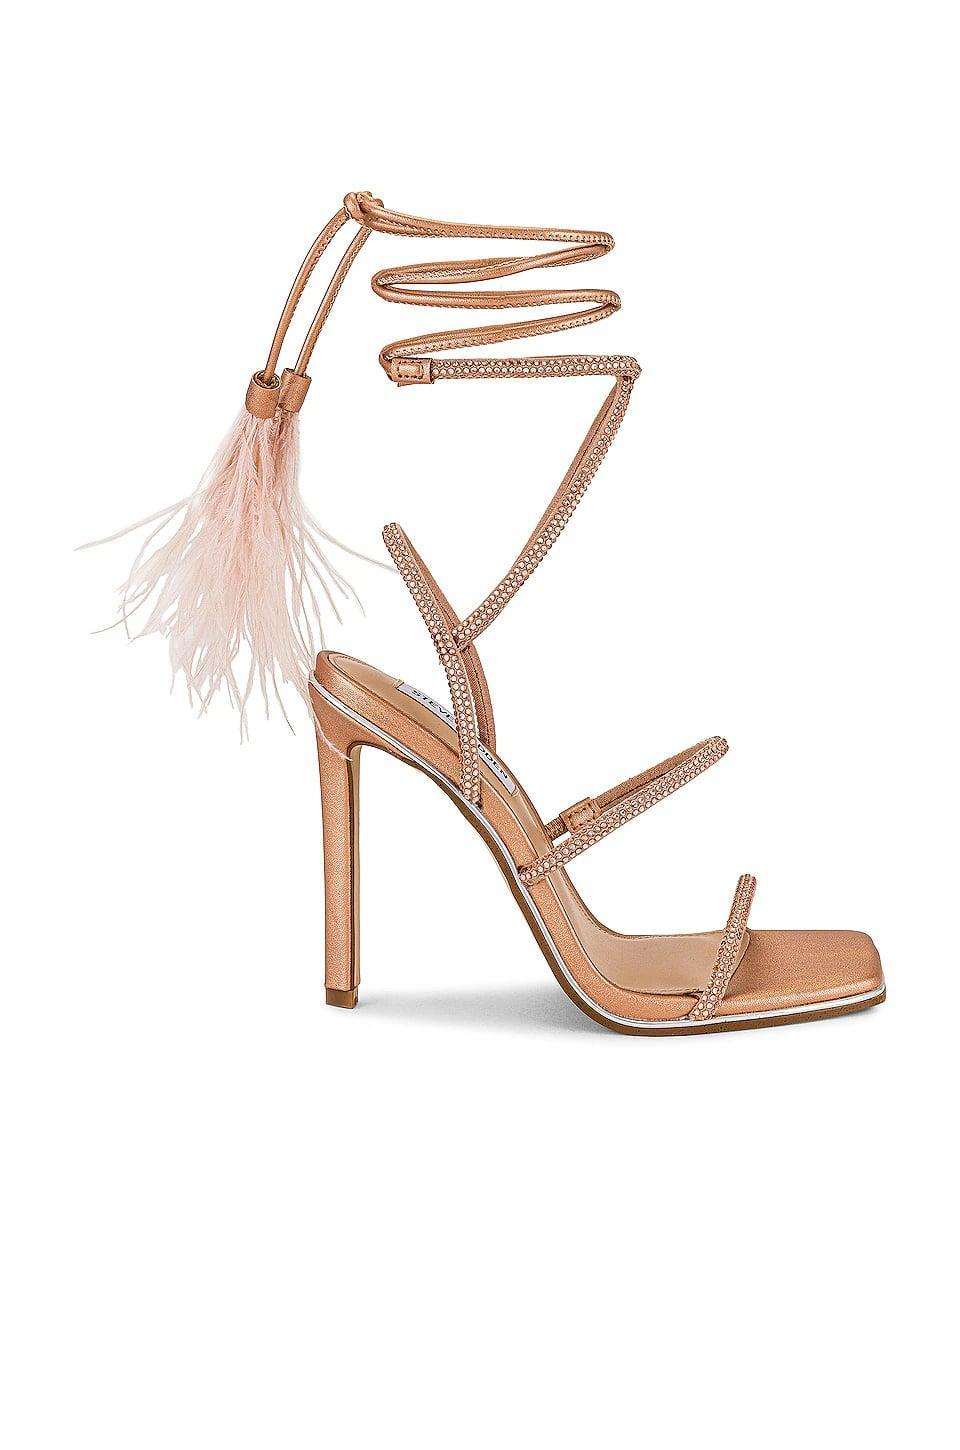 <p>These <span>Steve Madden Upgrade Sandals</span> ($110) make us smile. From the sparkly straps to the feathered ties, these are the shoes that will stand out from the crowd.</p>